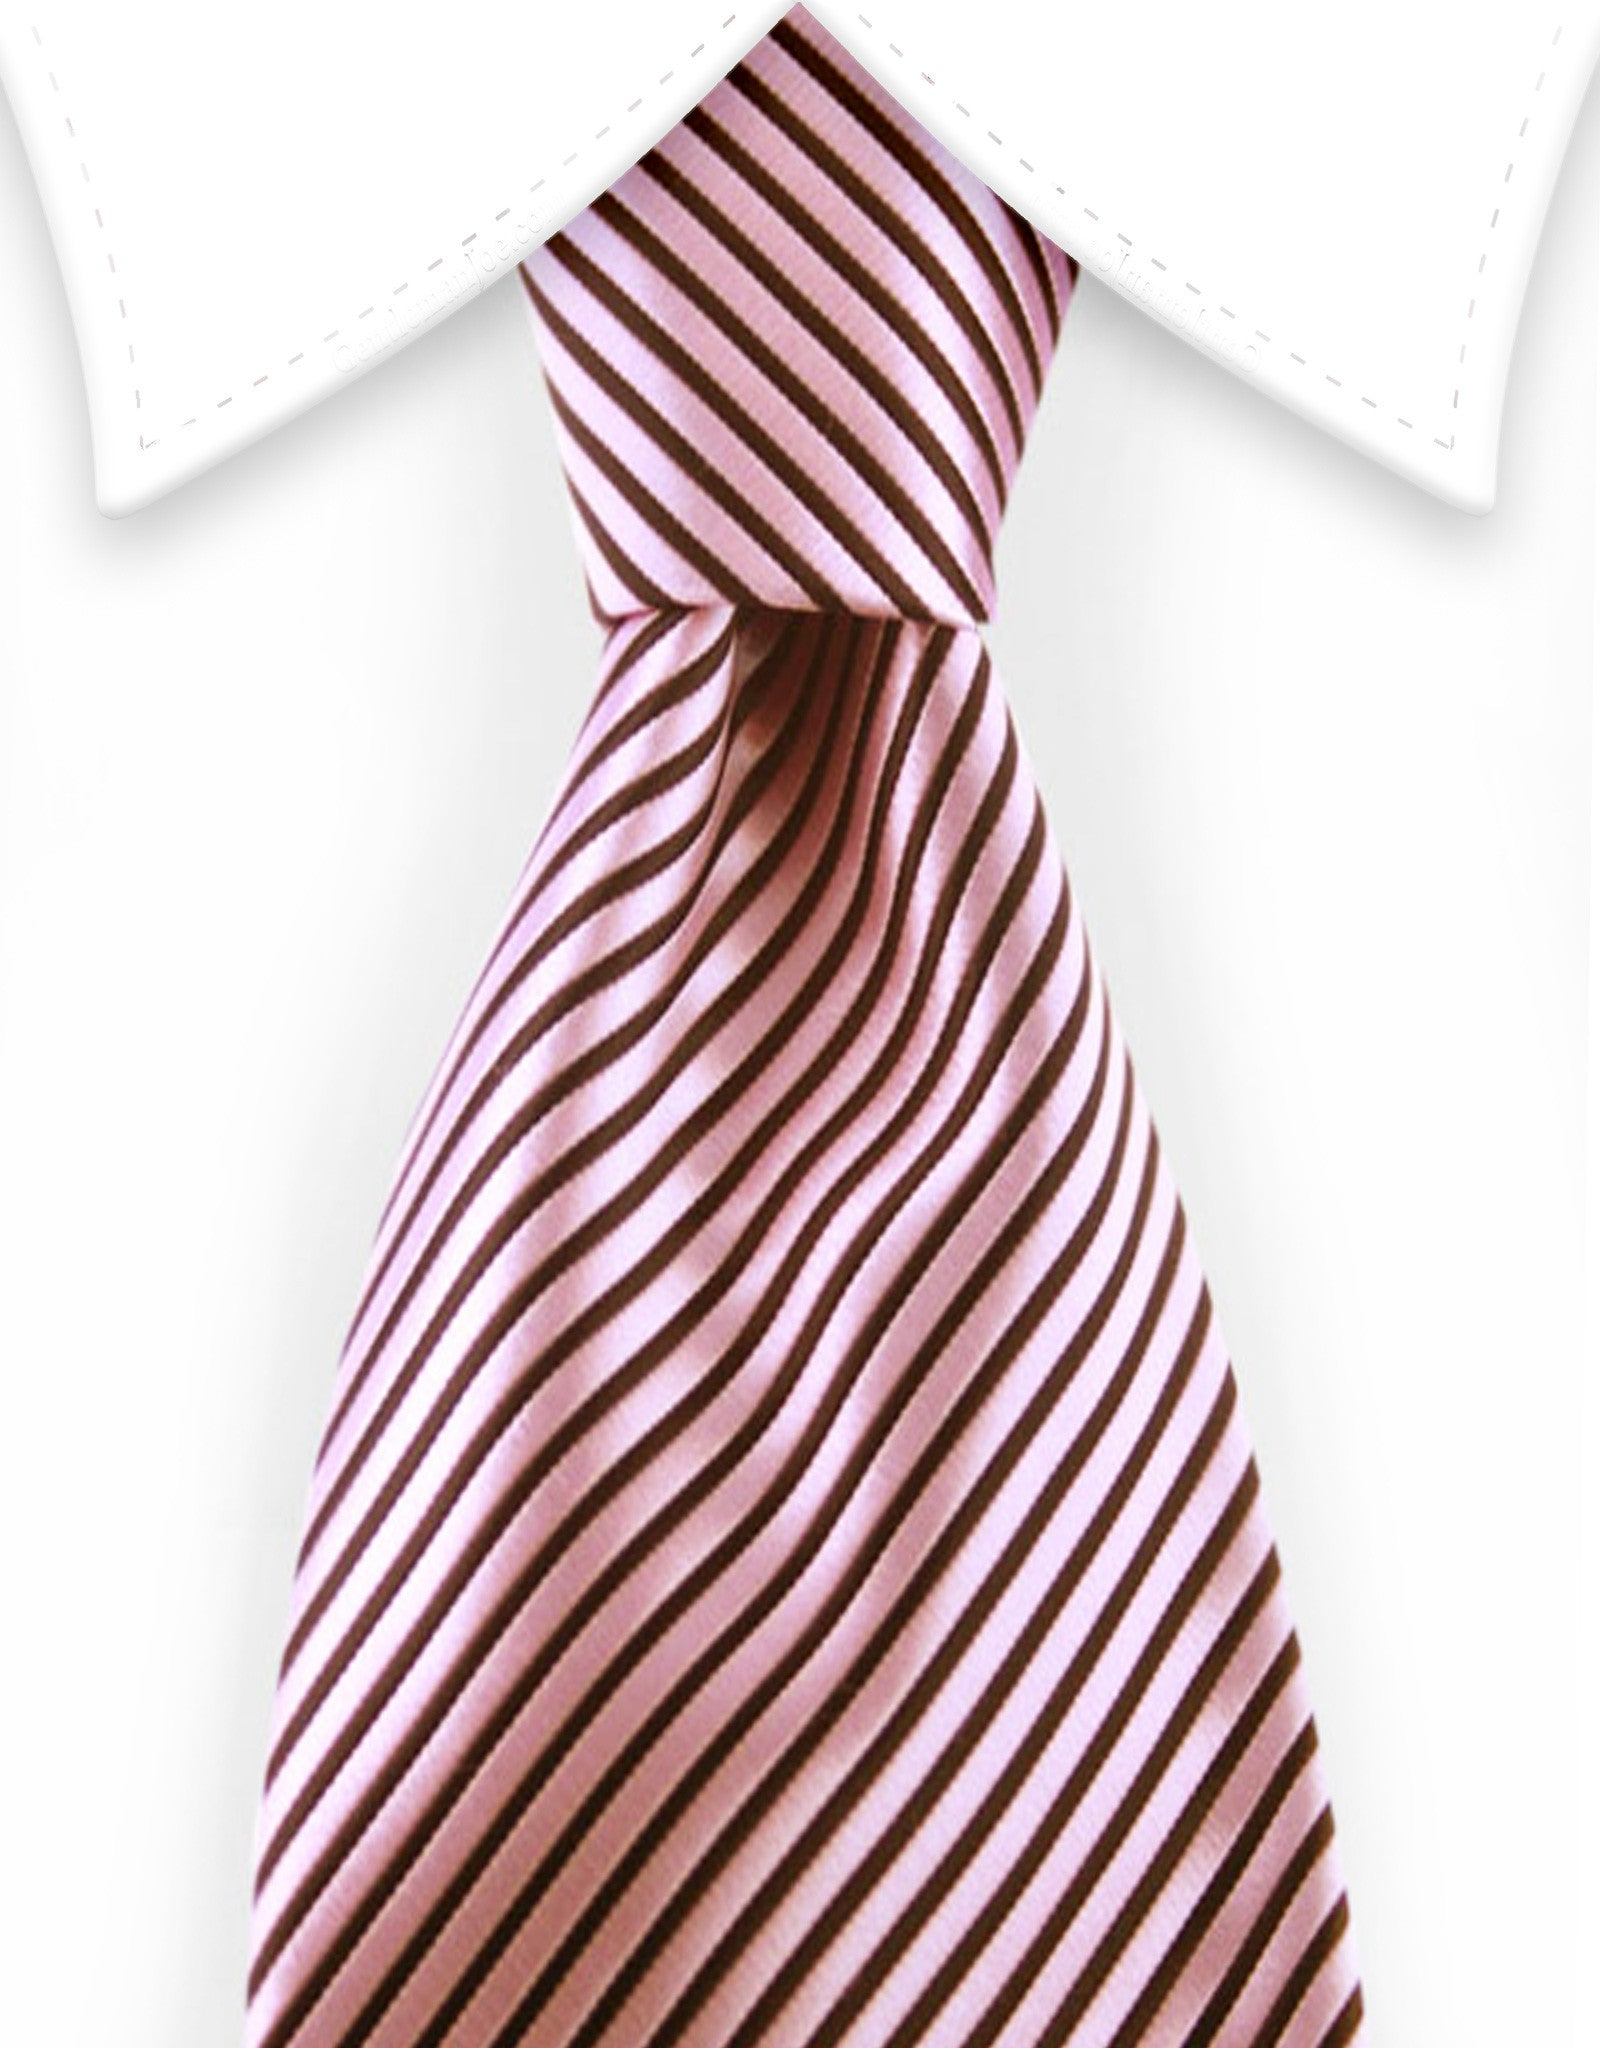 blush pink and black pinstriped tie